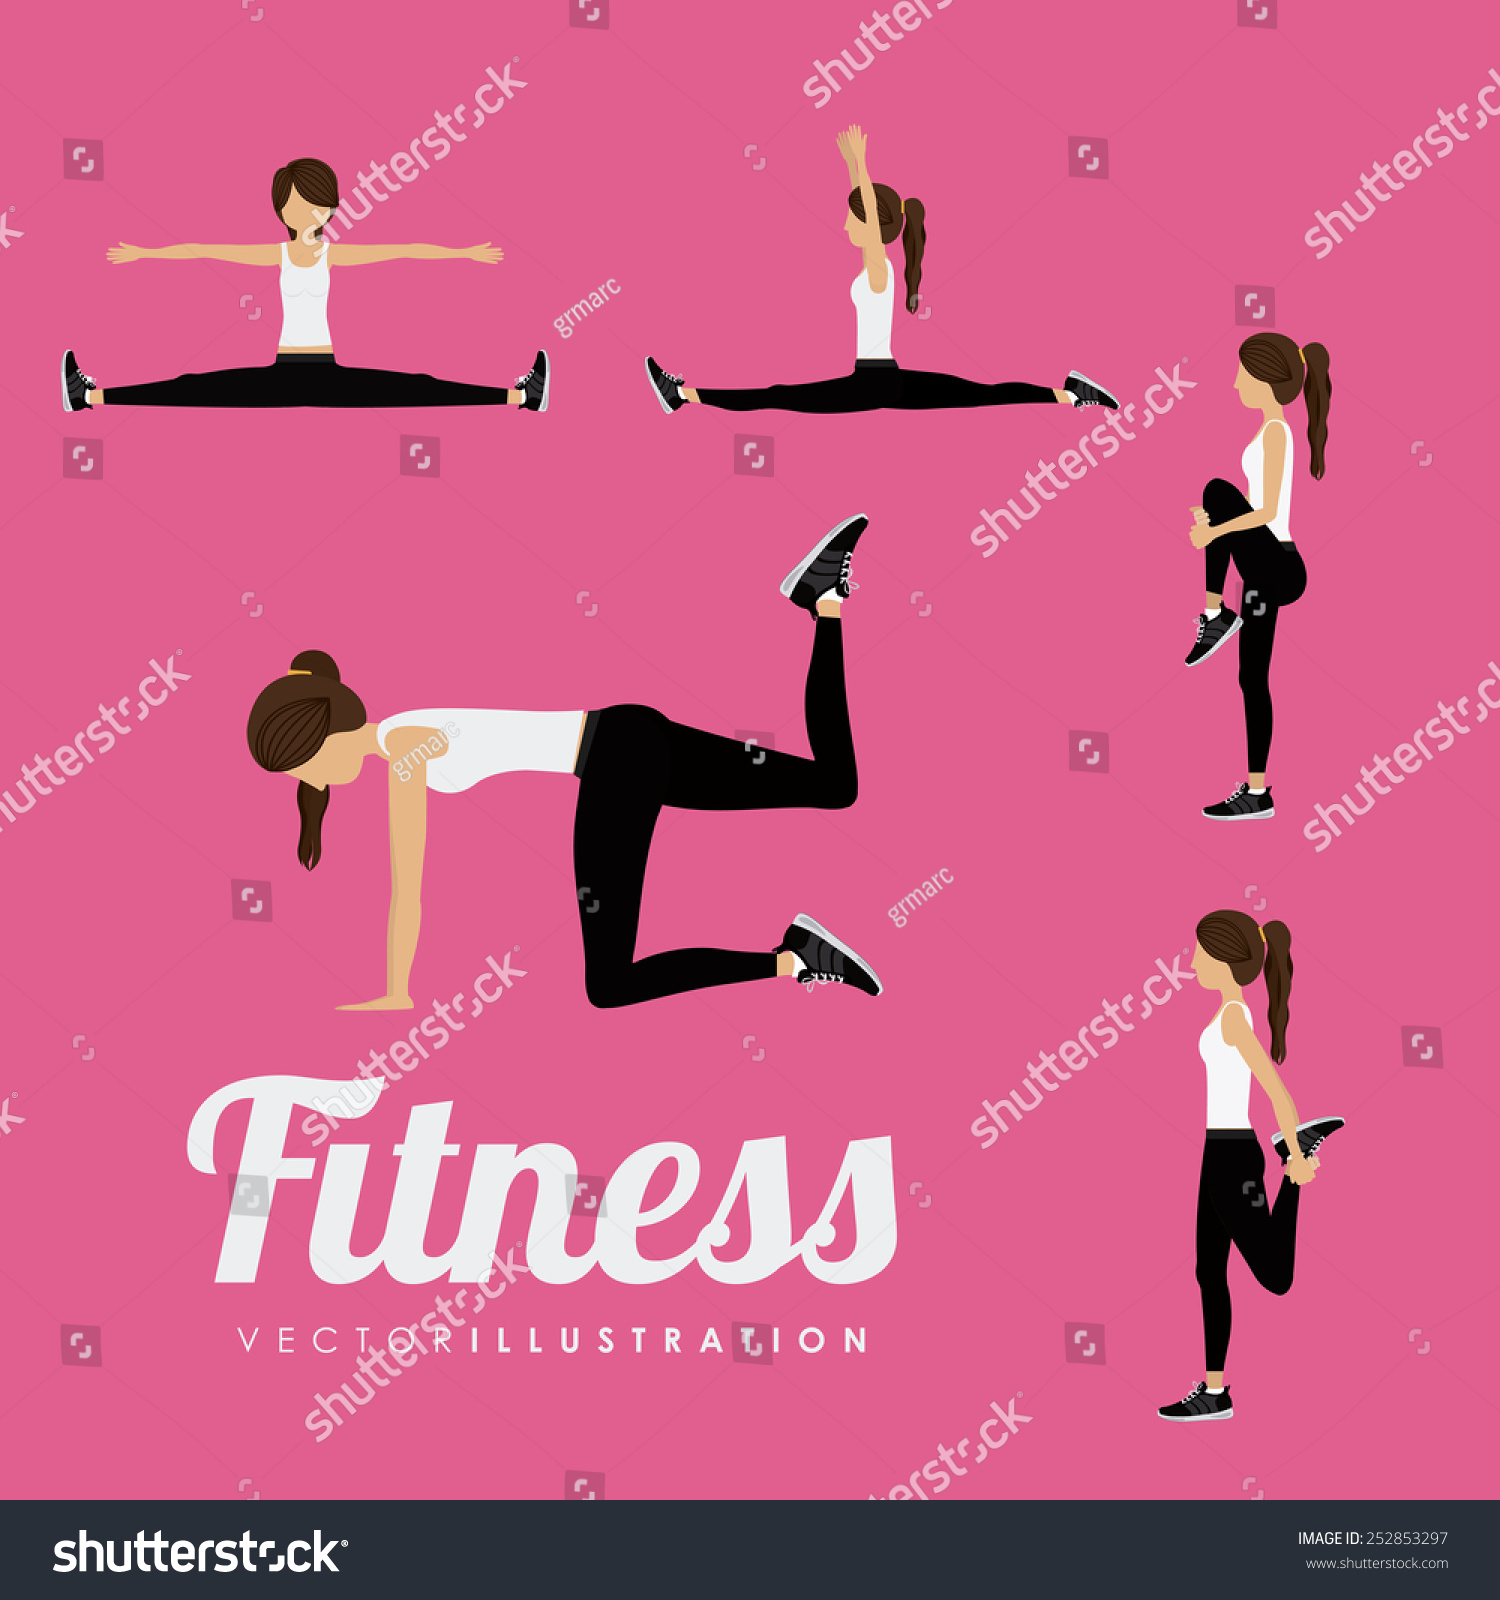 Fitness Design Over Pink Background Vector Stock Vector 252853297 ... for Physical Fitness Design  303mzq